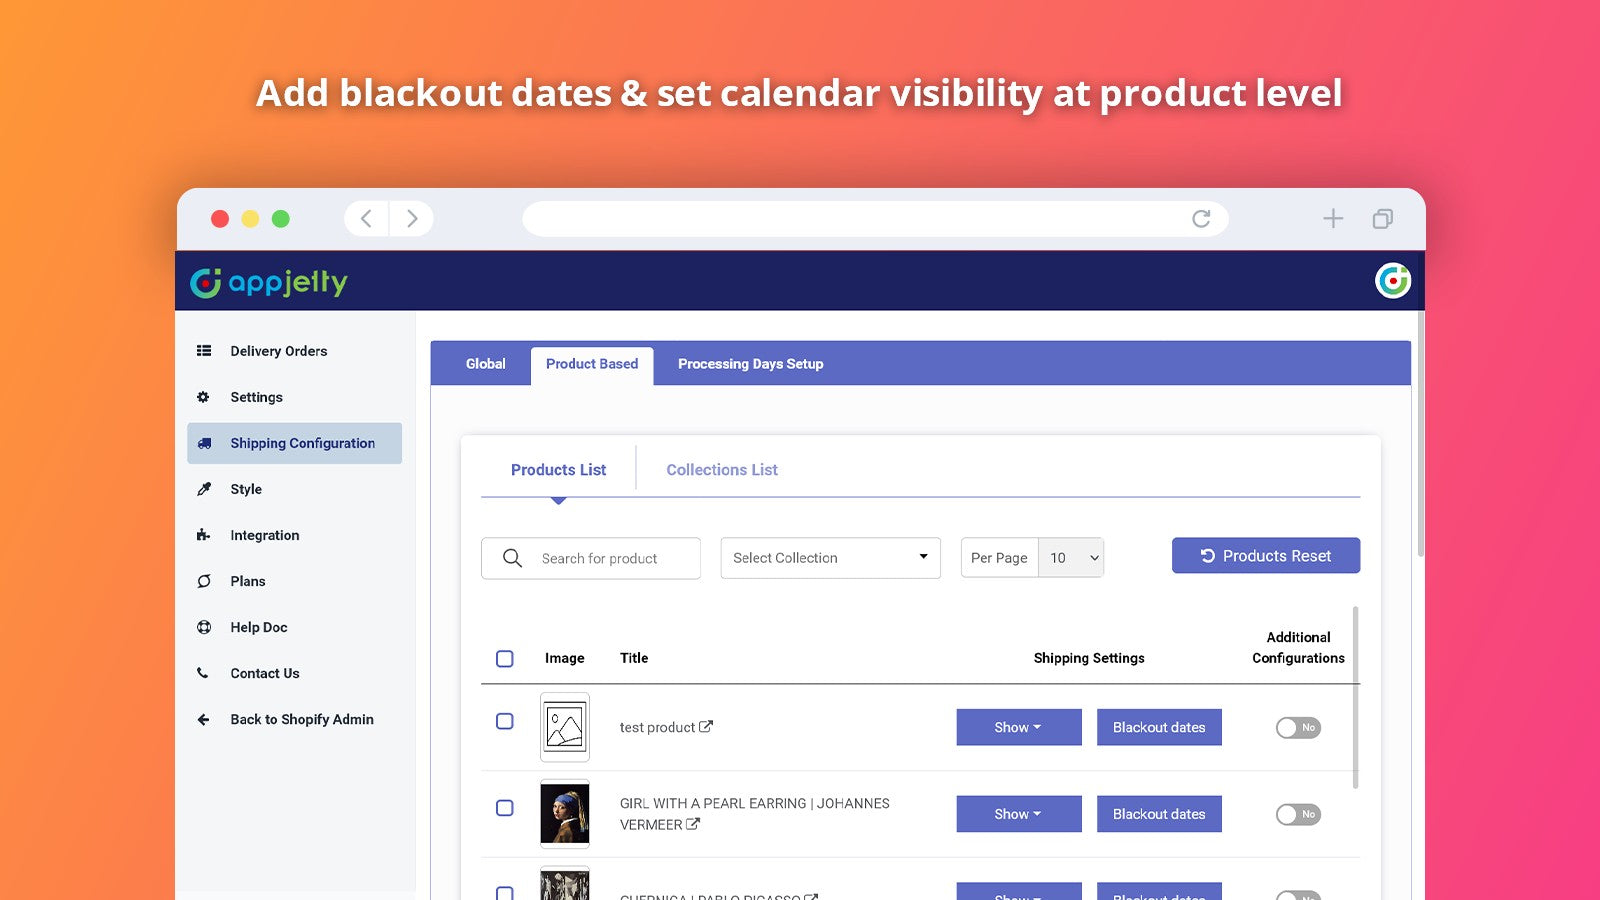 Blackout dates at product level